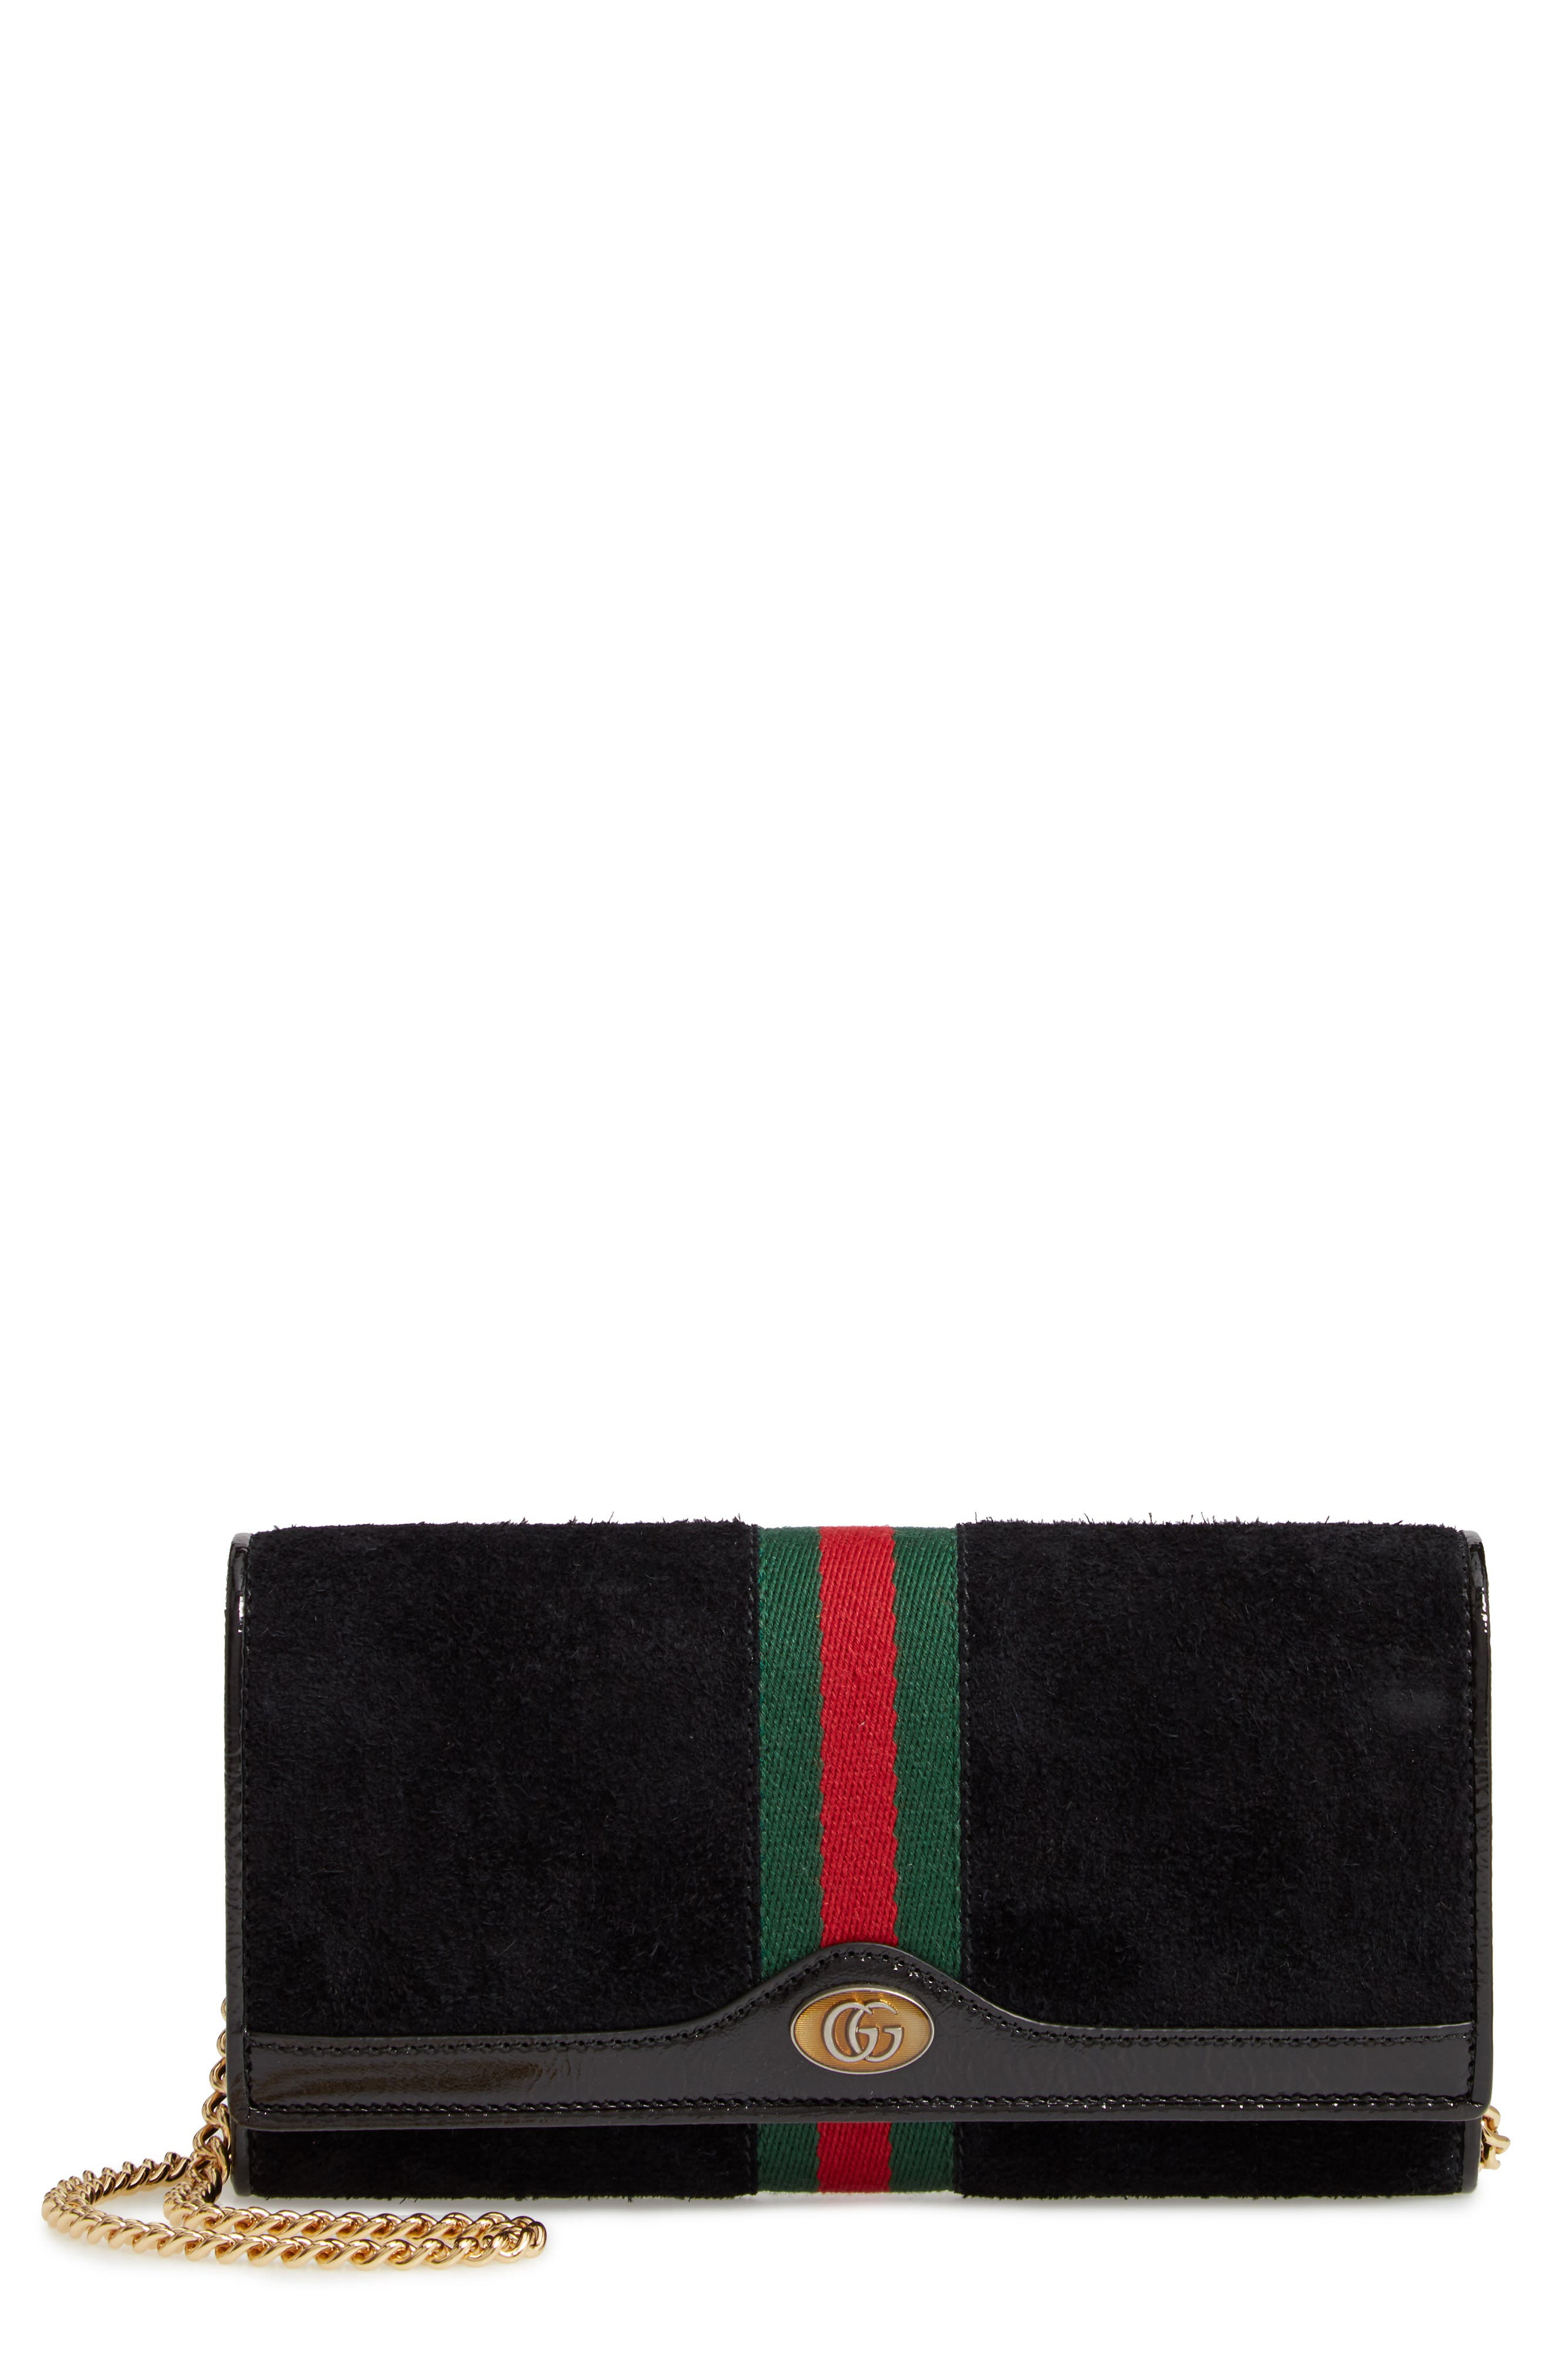 GUCCI, Ophidia Suede Continental Wallet, Main thumbnail 1, color, NERO/ VERT/ RED